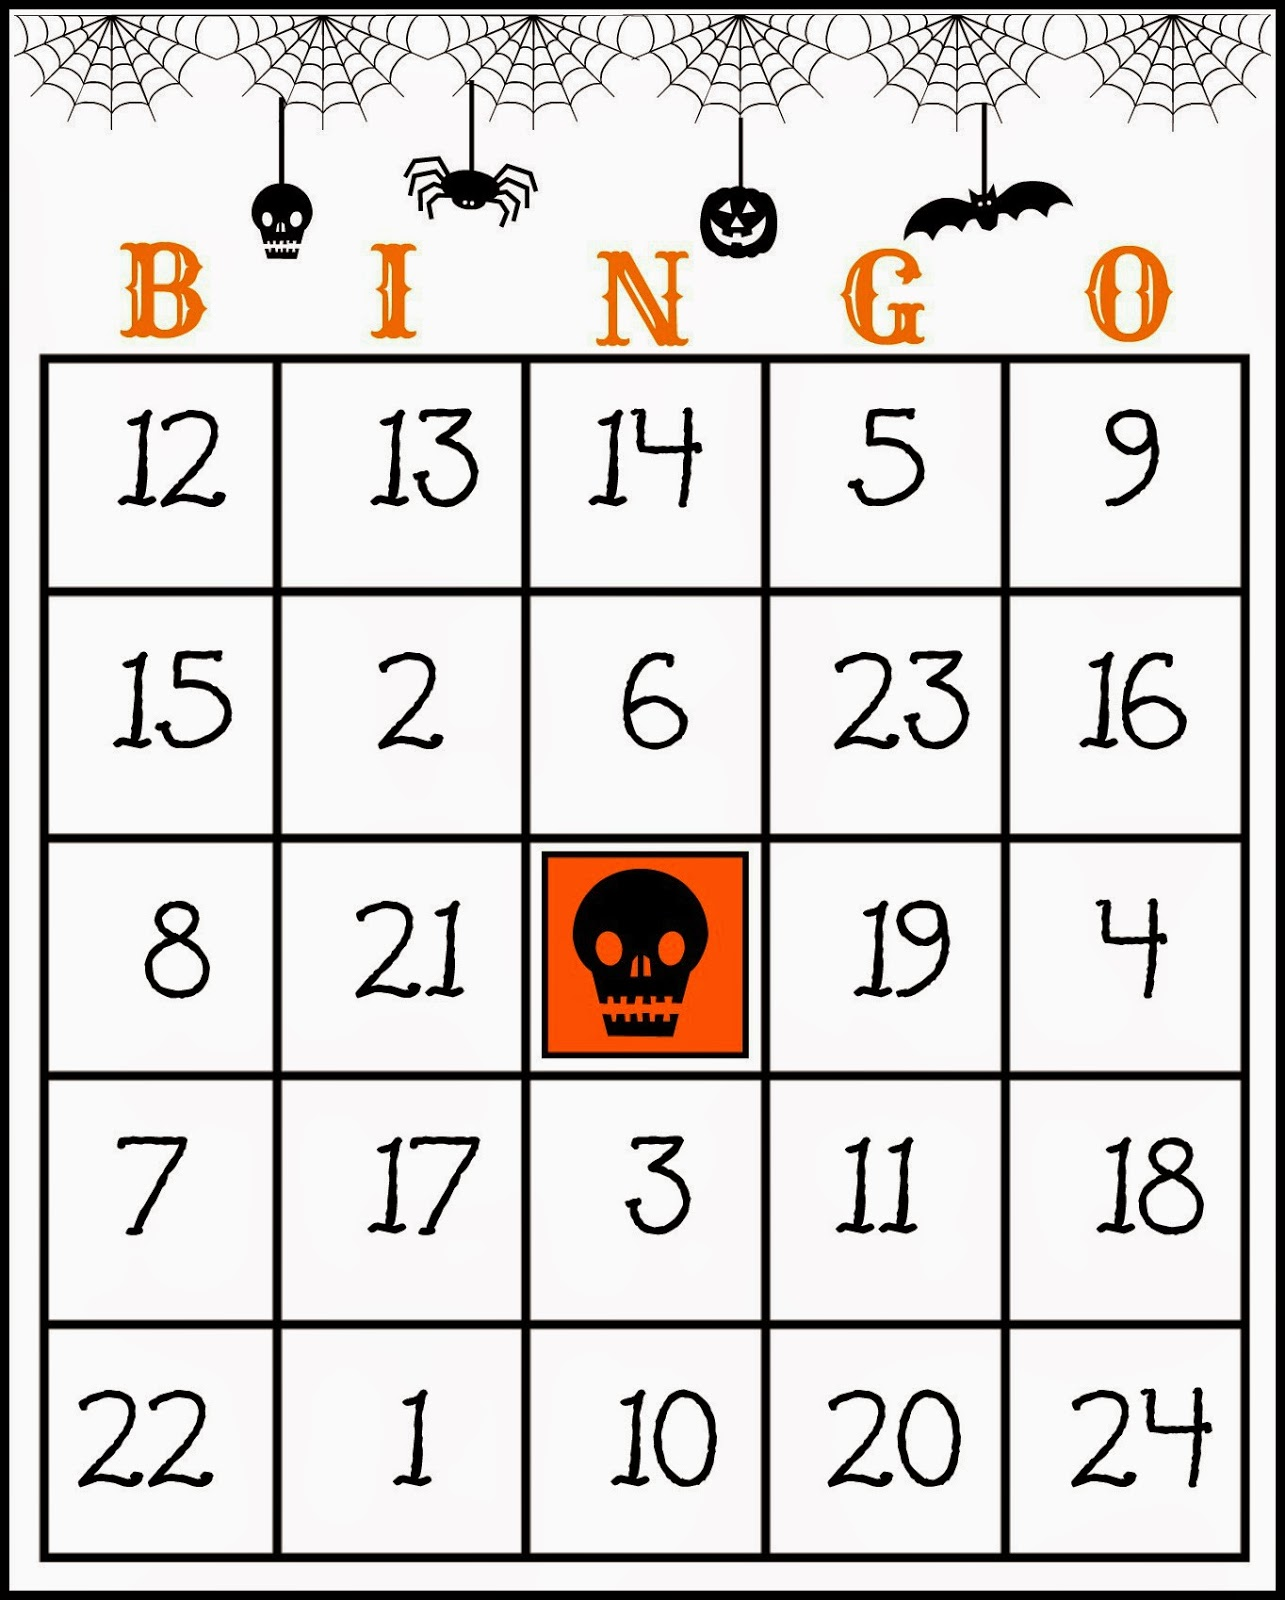 crafty in crosby free printable halloween bingo game - Free Printable Halloween Bingo Game Cards